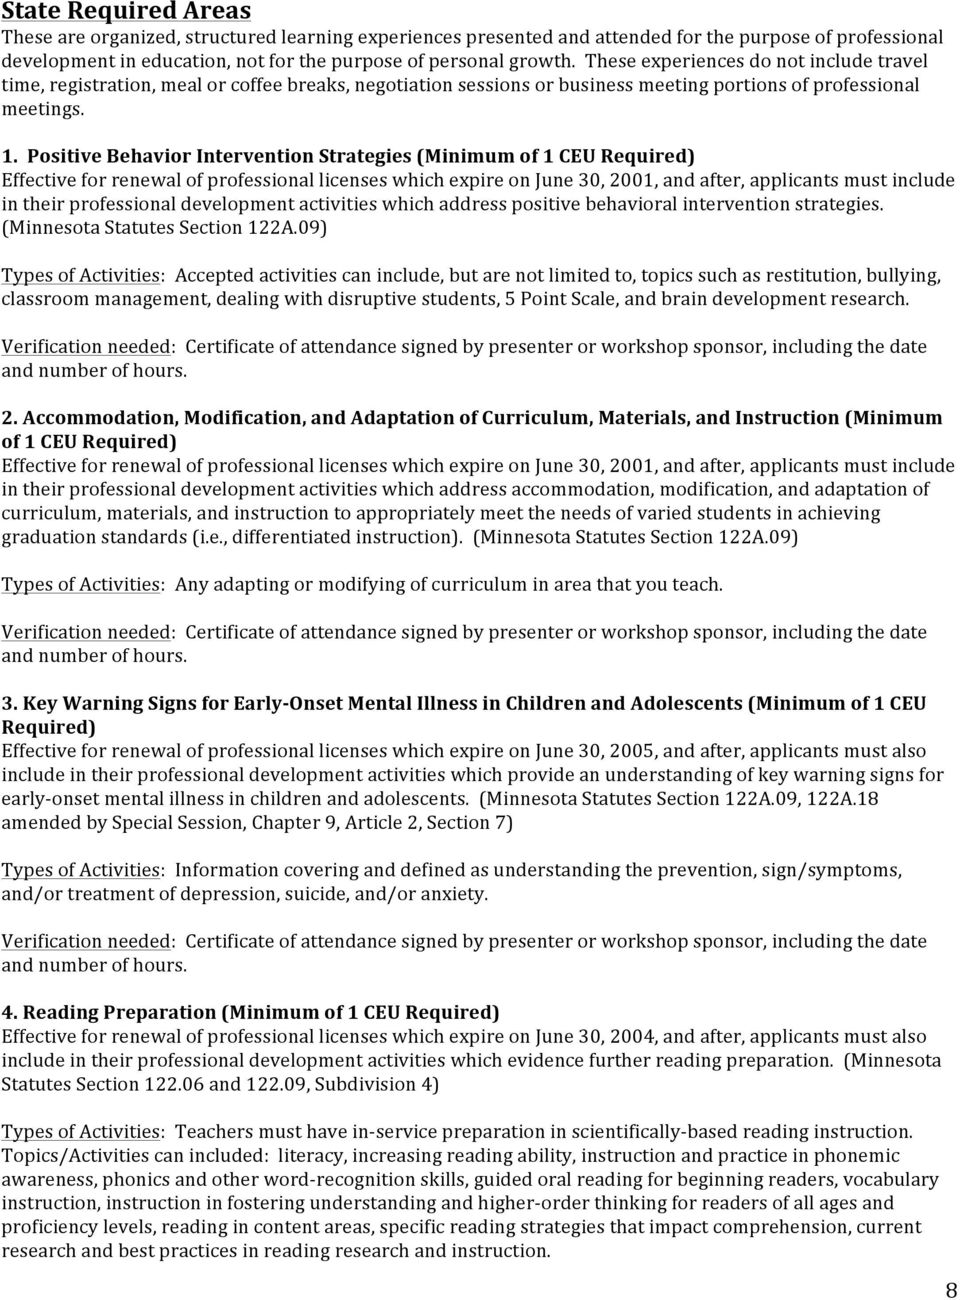 Positive Behavior Intervention Strategies (Minimum of 1 CEU Required) Effective for renewal of professional licenses which expire on June 30, 2001, and after, applicants must include in their